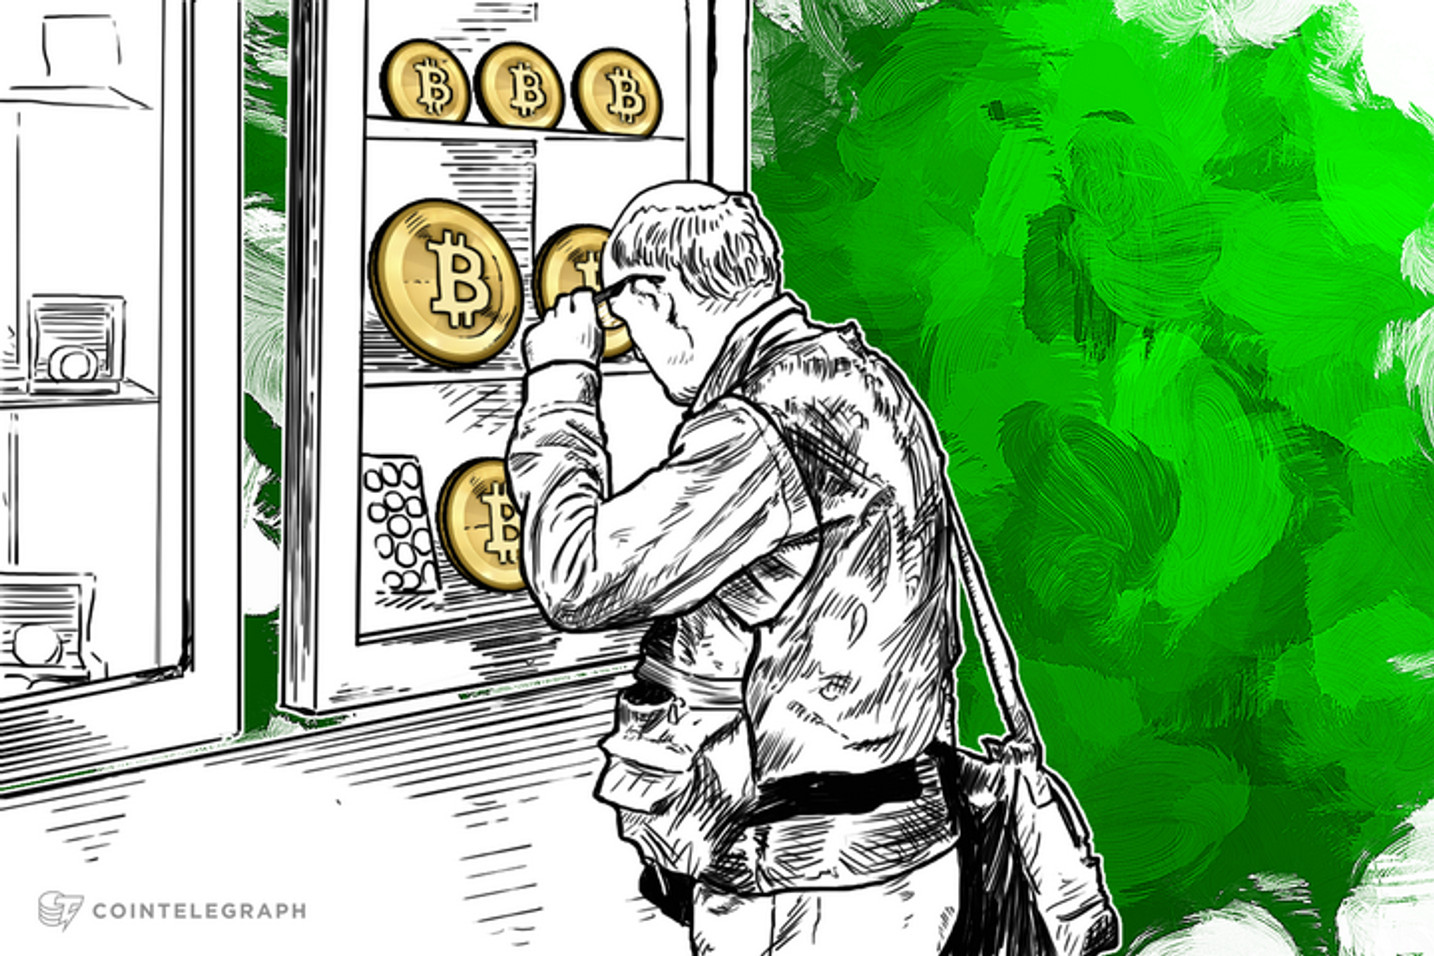 Wall of Coins: Buy Bitcoin Safely at Your Local Bank